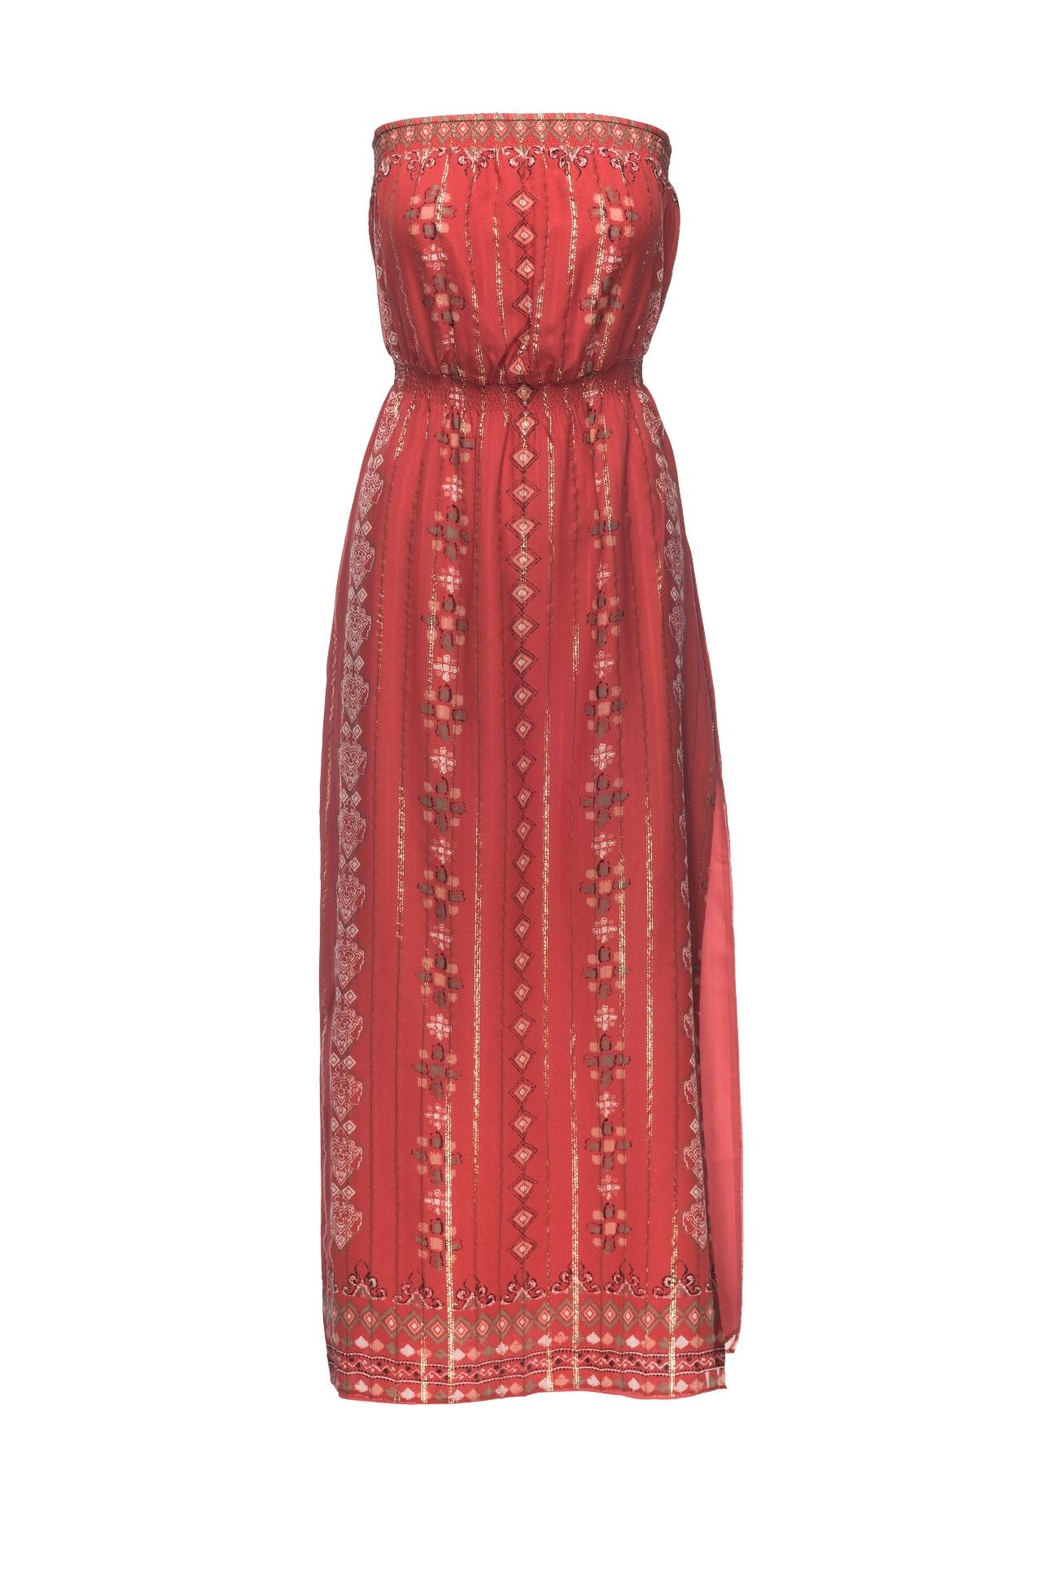 Joie Mariele Terracotta Dress - Main Image